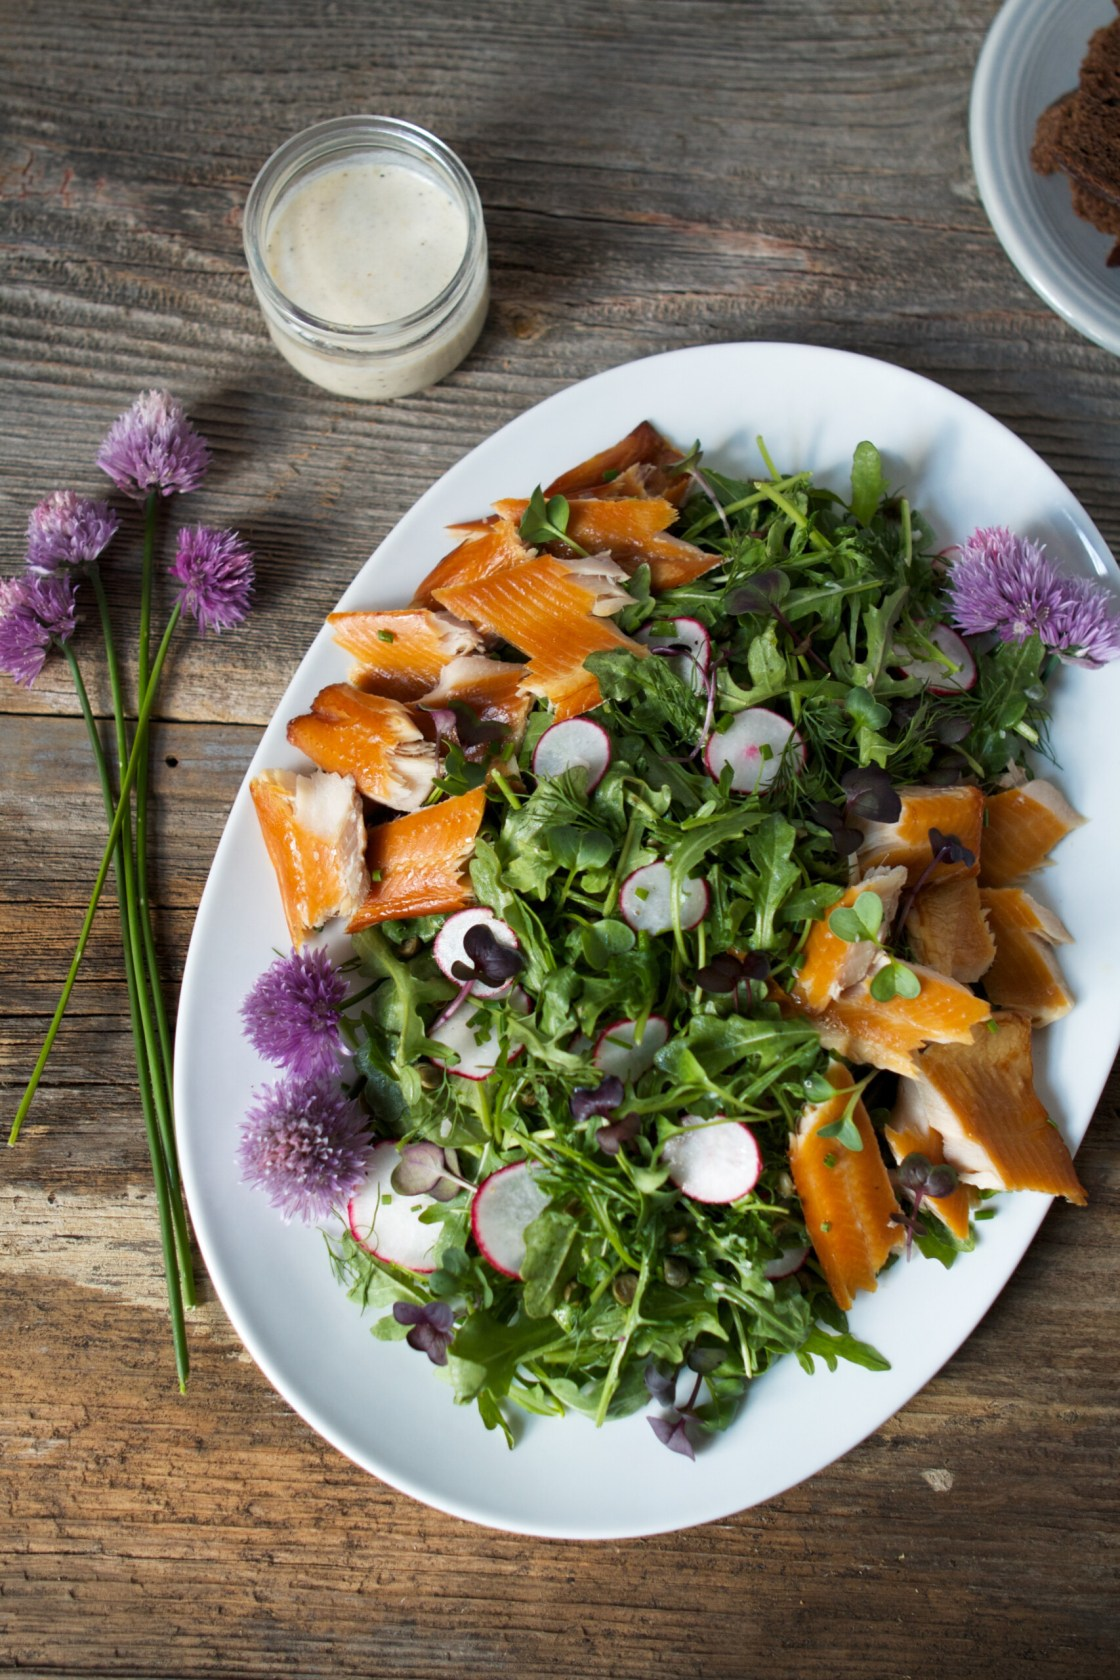 Overhead photo of a white plate with greens, smoked trout, and chive blossoms. Set on a wood table